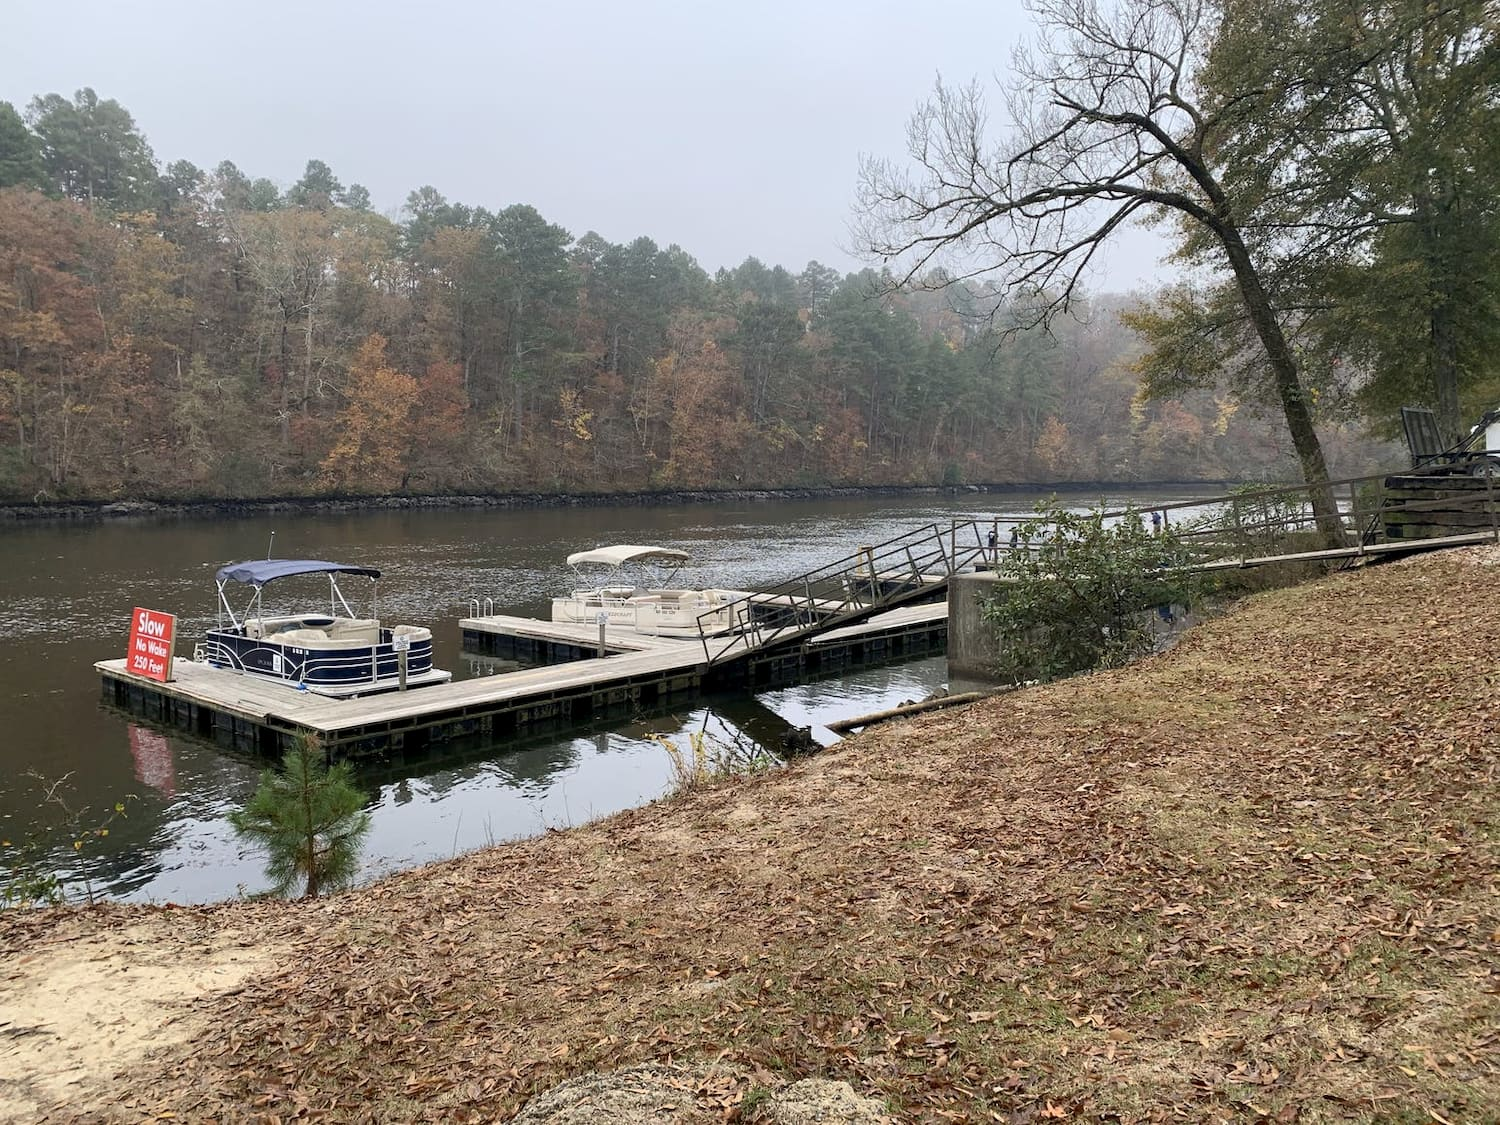 boats at dock on river during fall